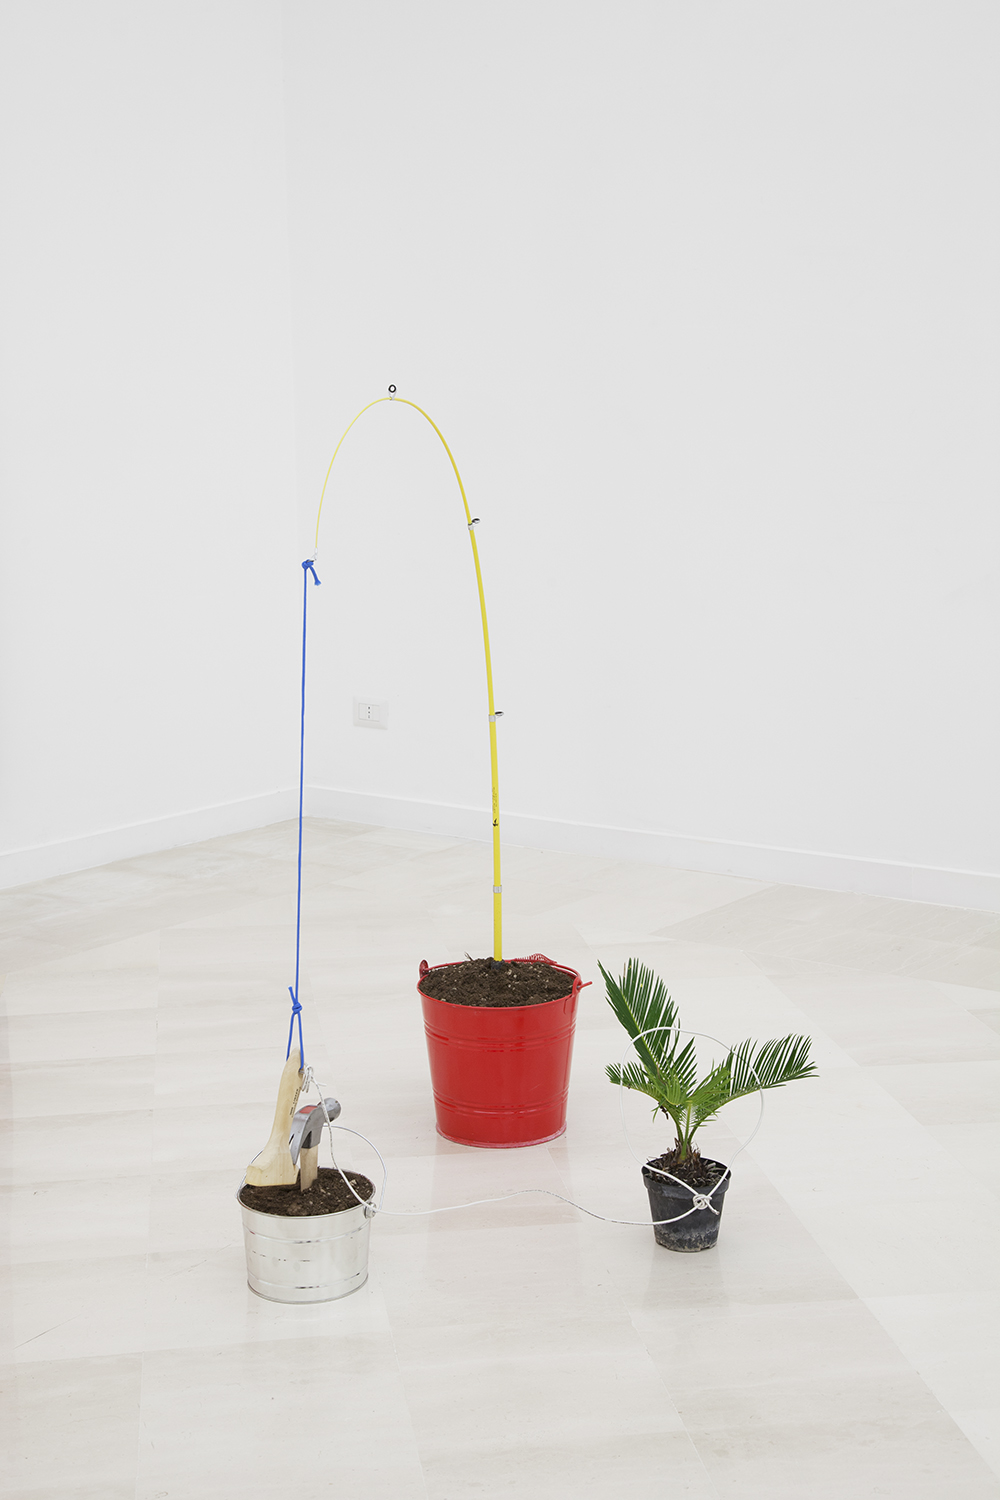 NICK DARMSTAEDTER  Babe Bennett, 2014  Fishing pole, buckets, plant, hammer, wood, dirt and cord  33 x 55 x 24 inches